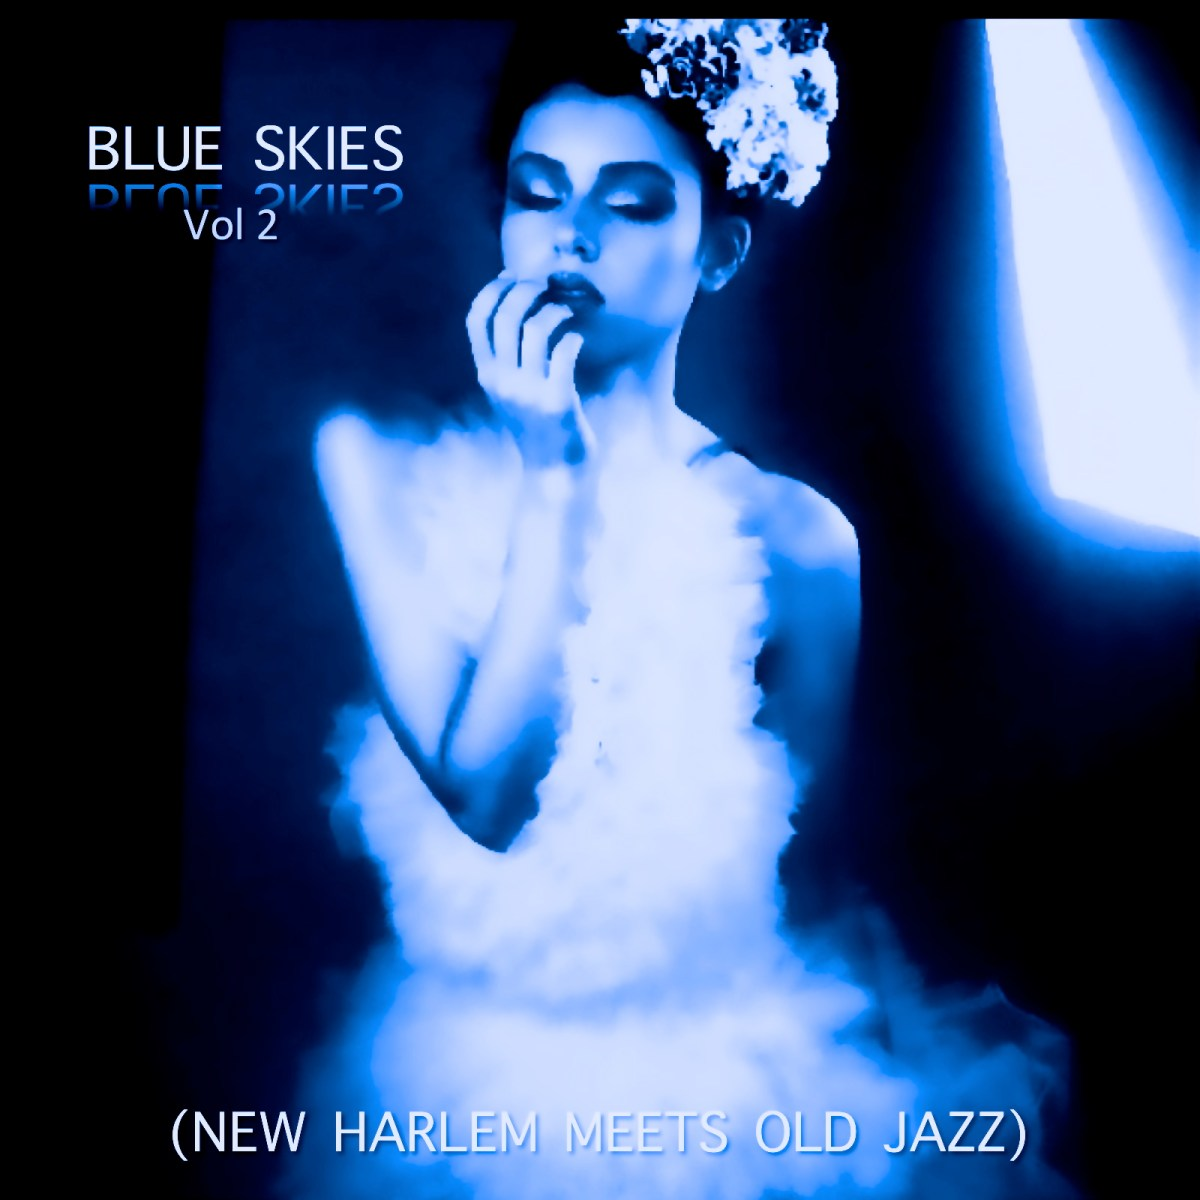 """BLUE SKIES"" Vol. 2 (New Harlem Meets Old Jazz)"